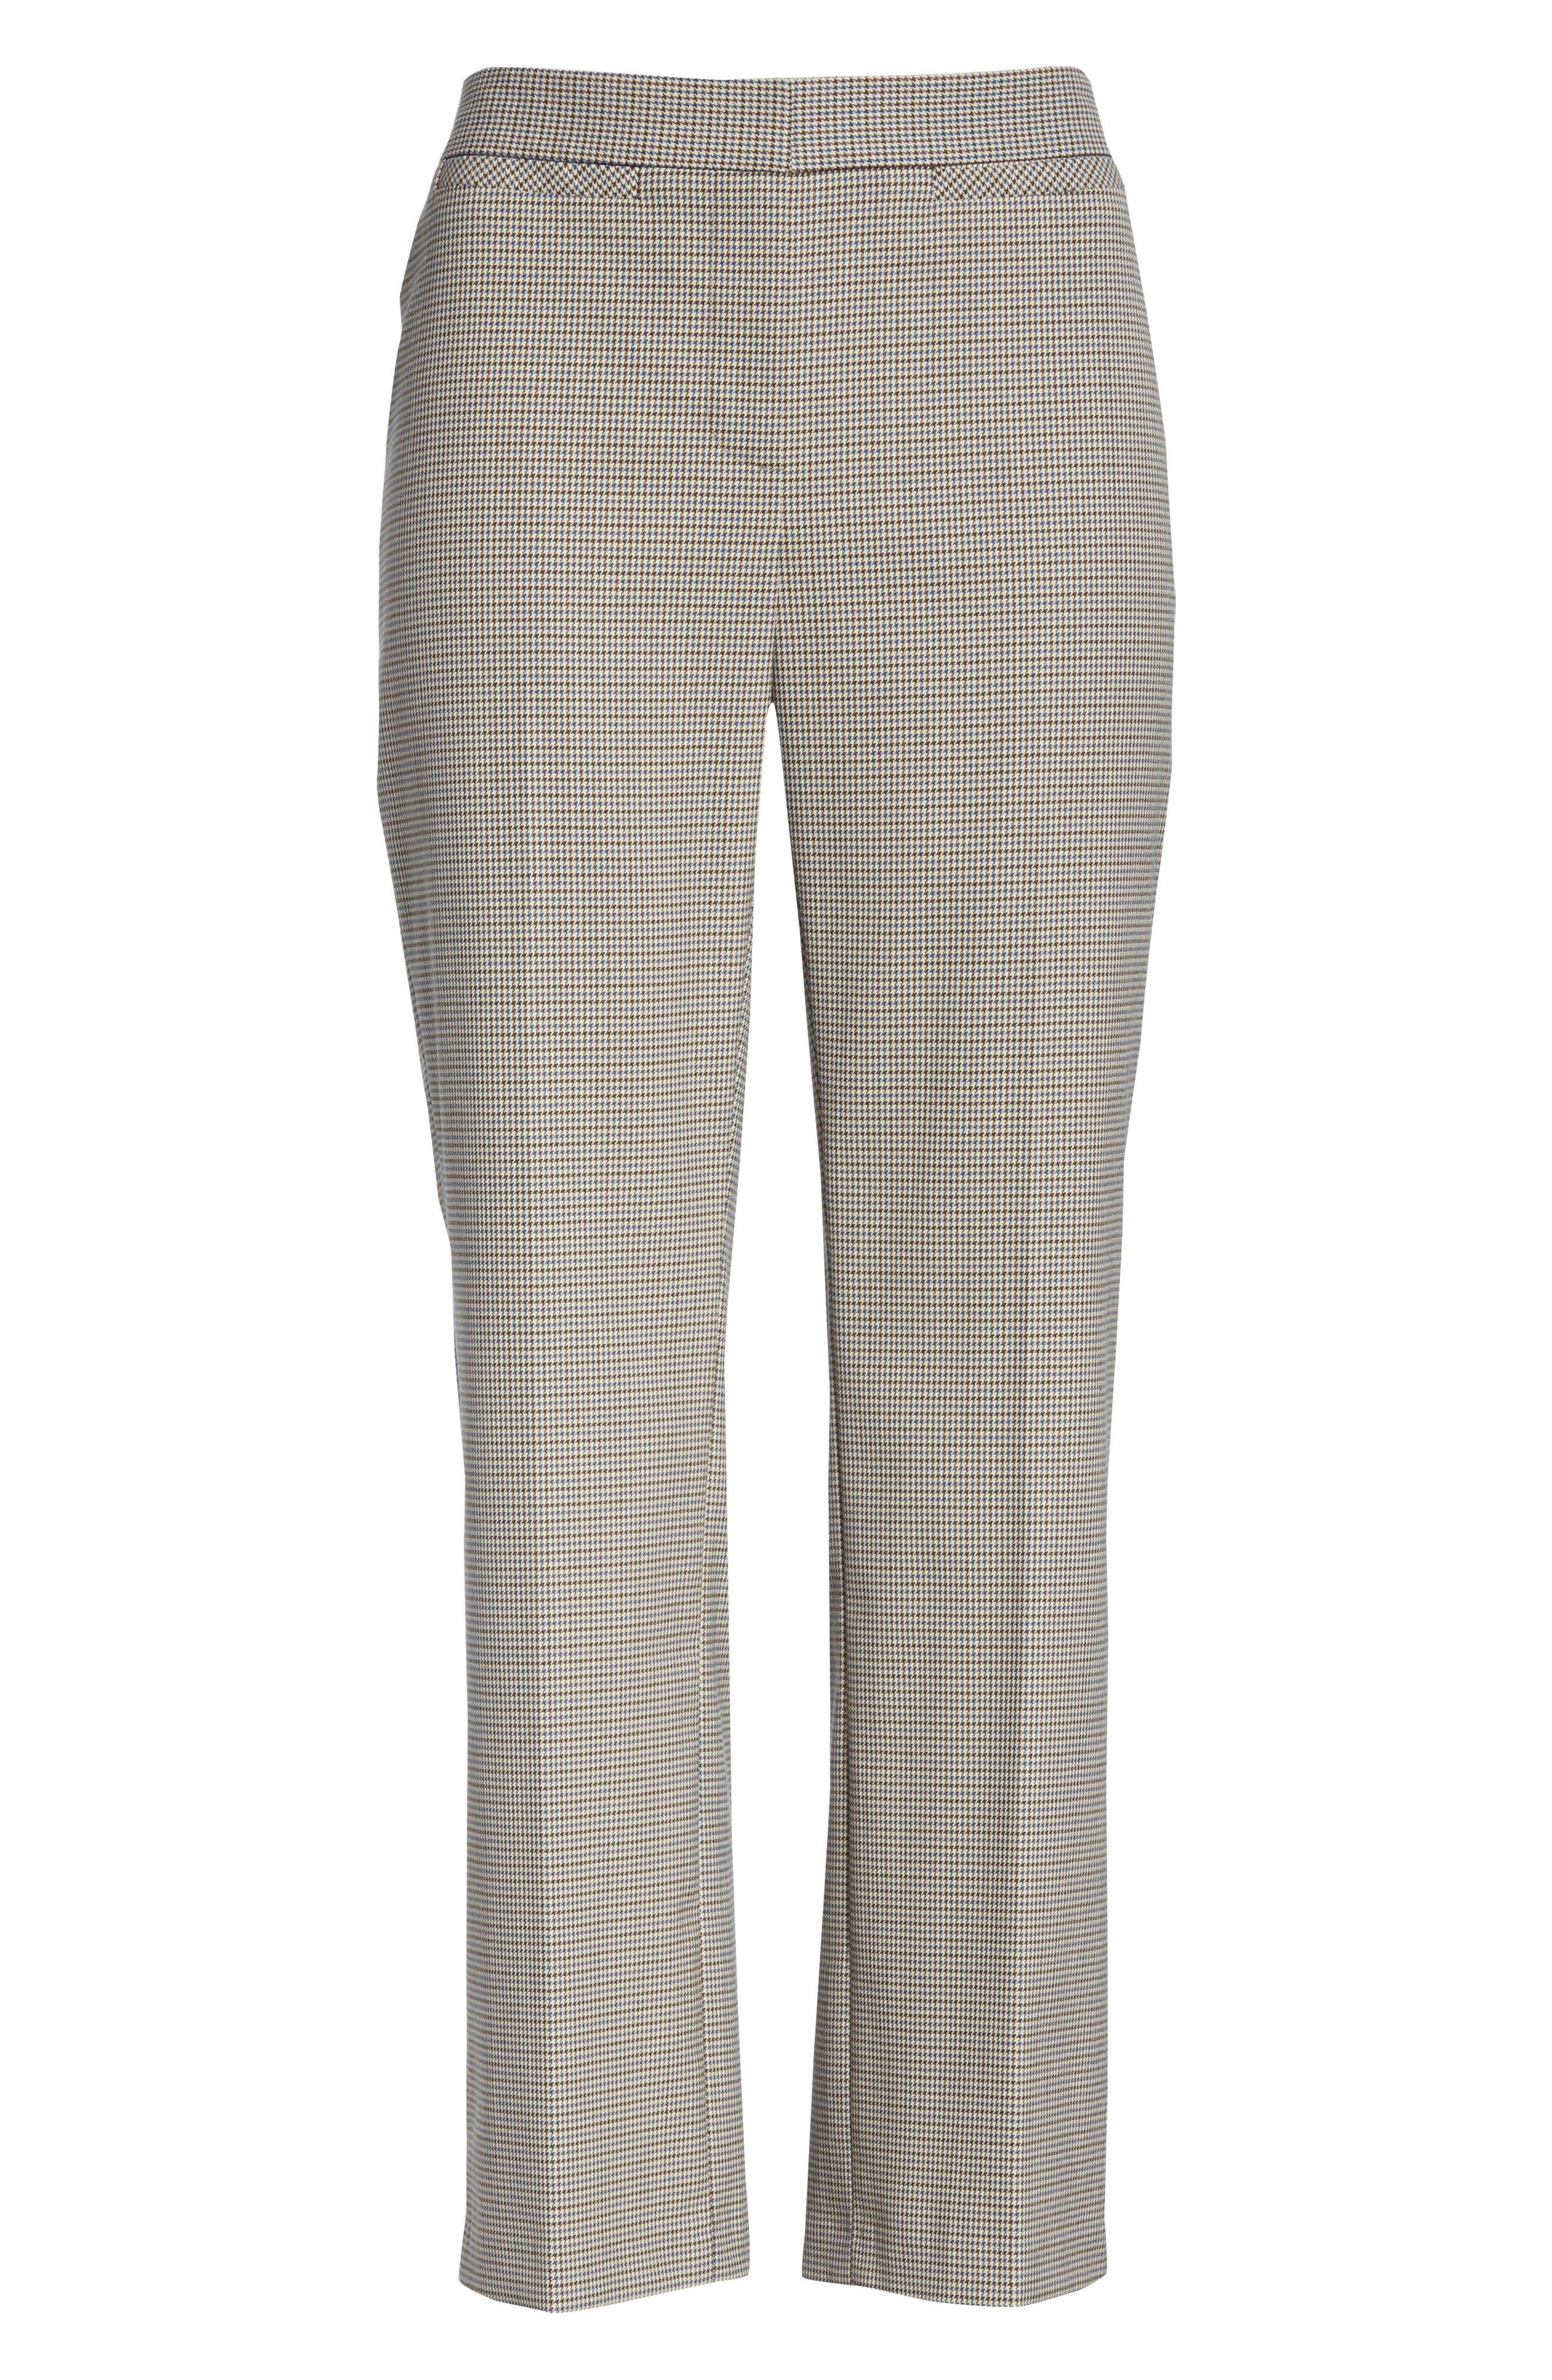 Check Flare Leg Crop Pants,                             Alternate thumbnail 6, color,                             IVORY DOGTOOTH WEAVE